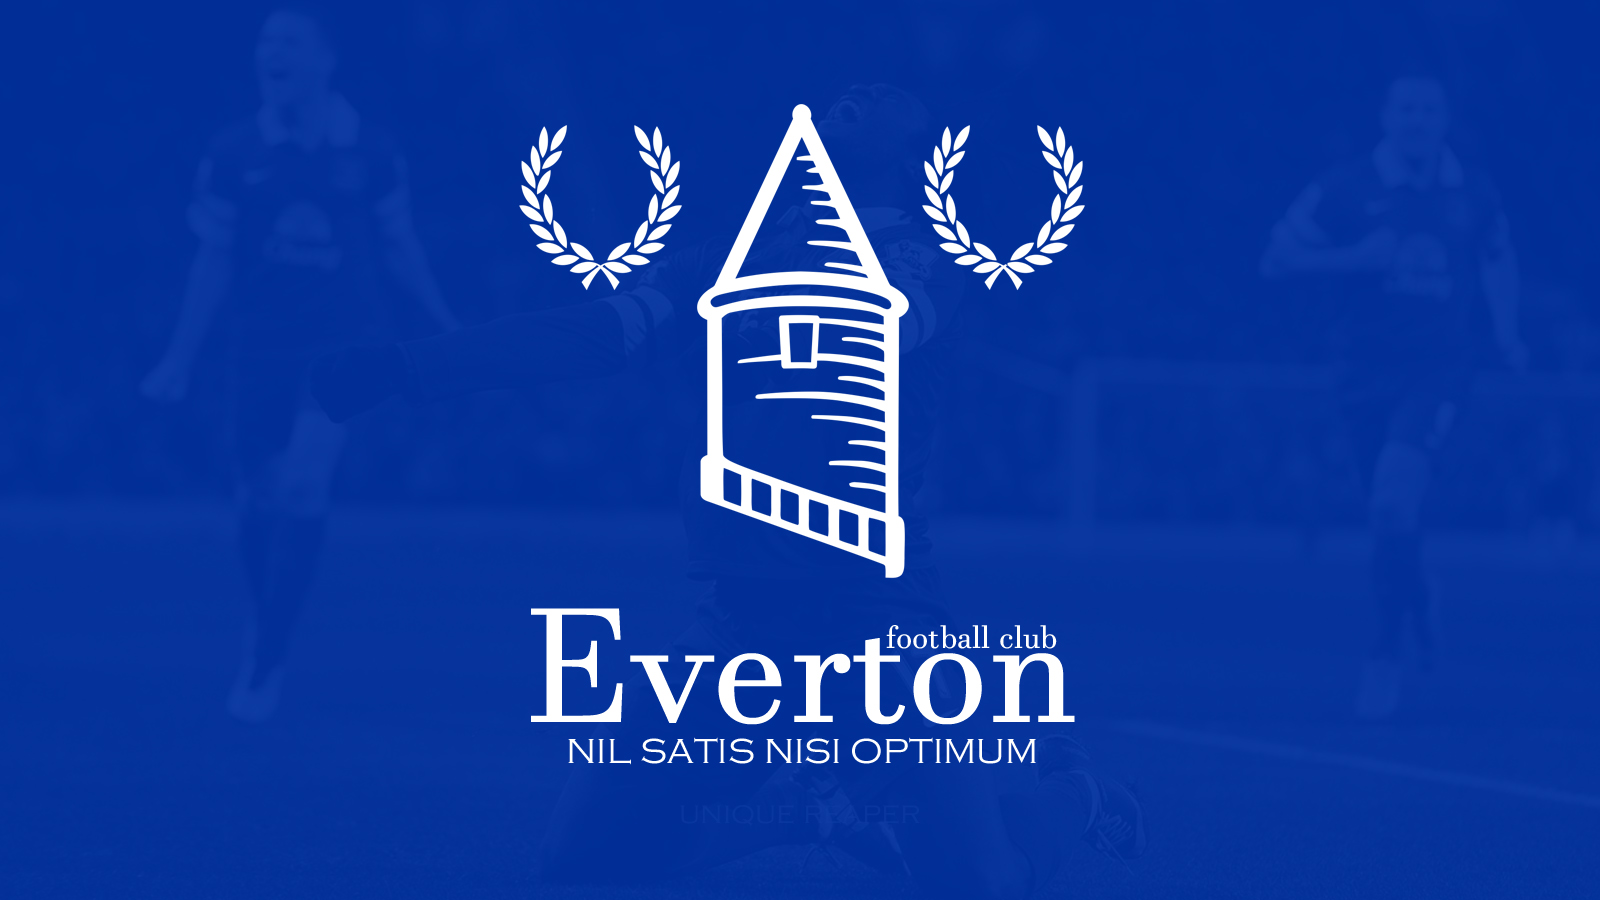 Everton Football Club wallpaper by UniqueReaper on DeviantArt